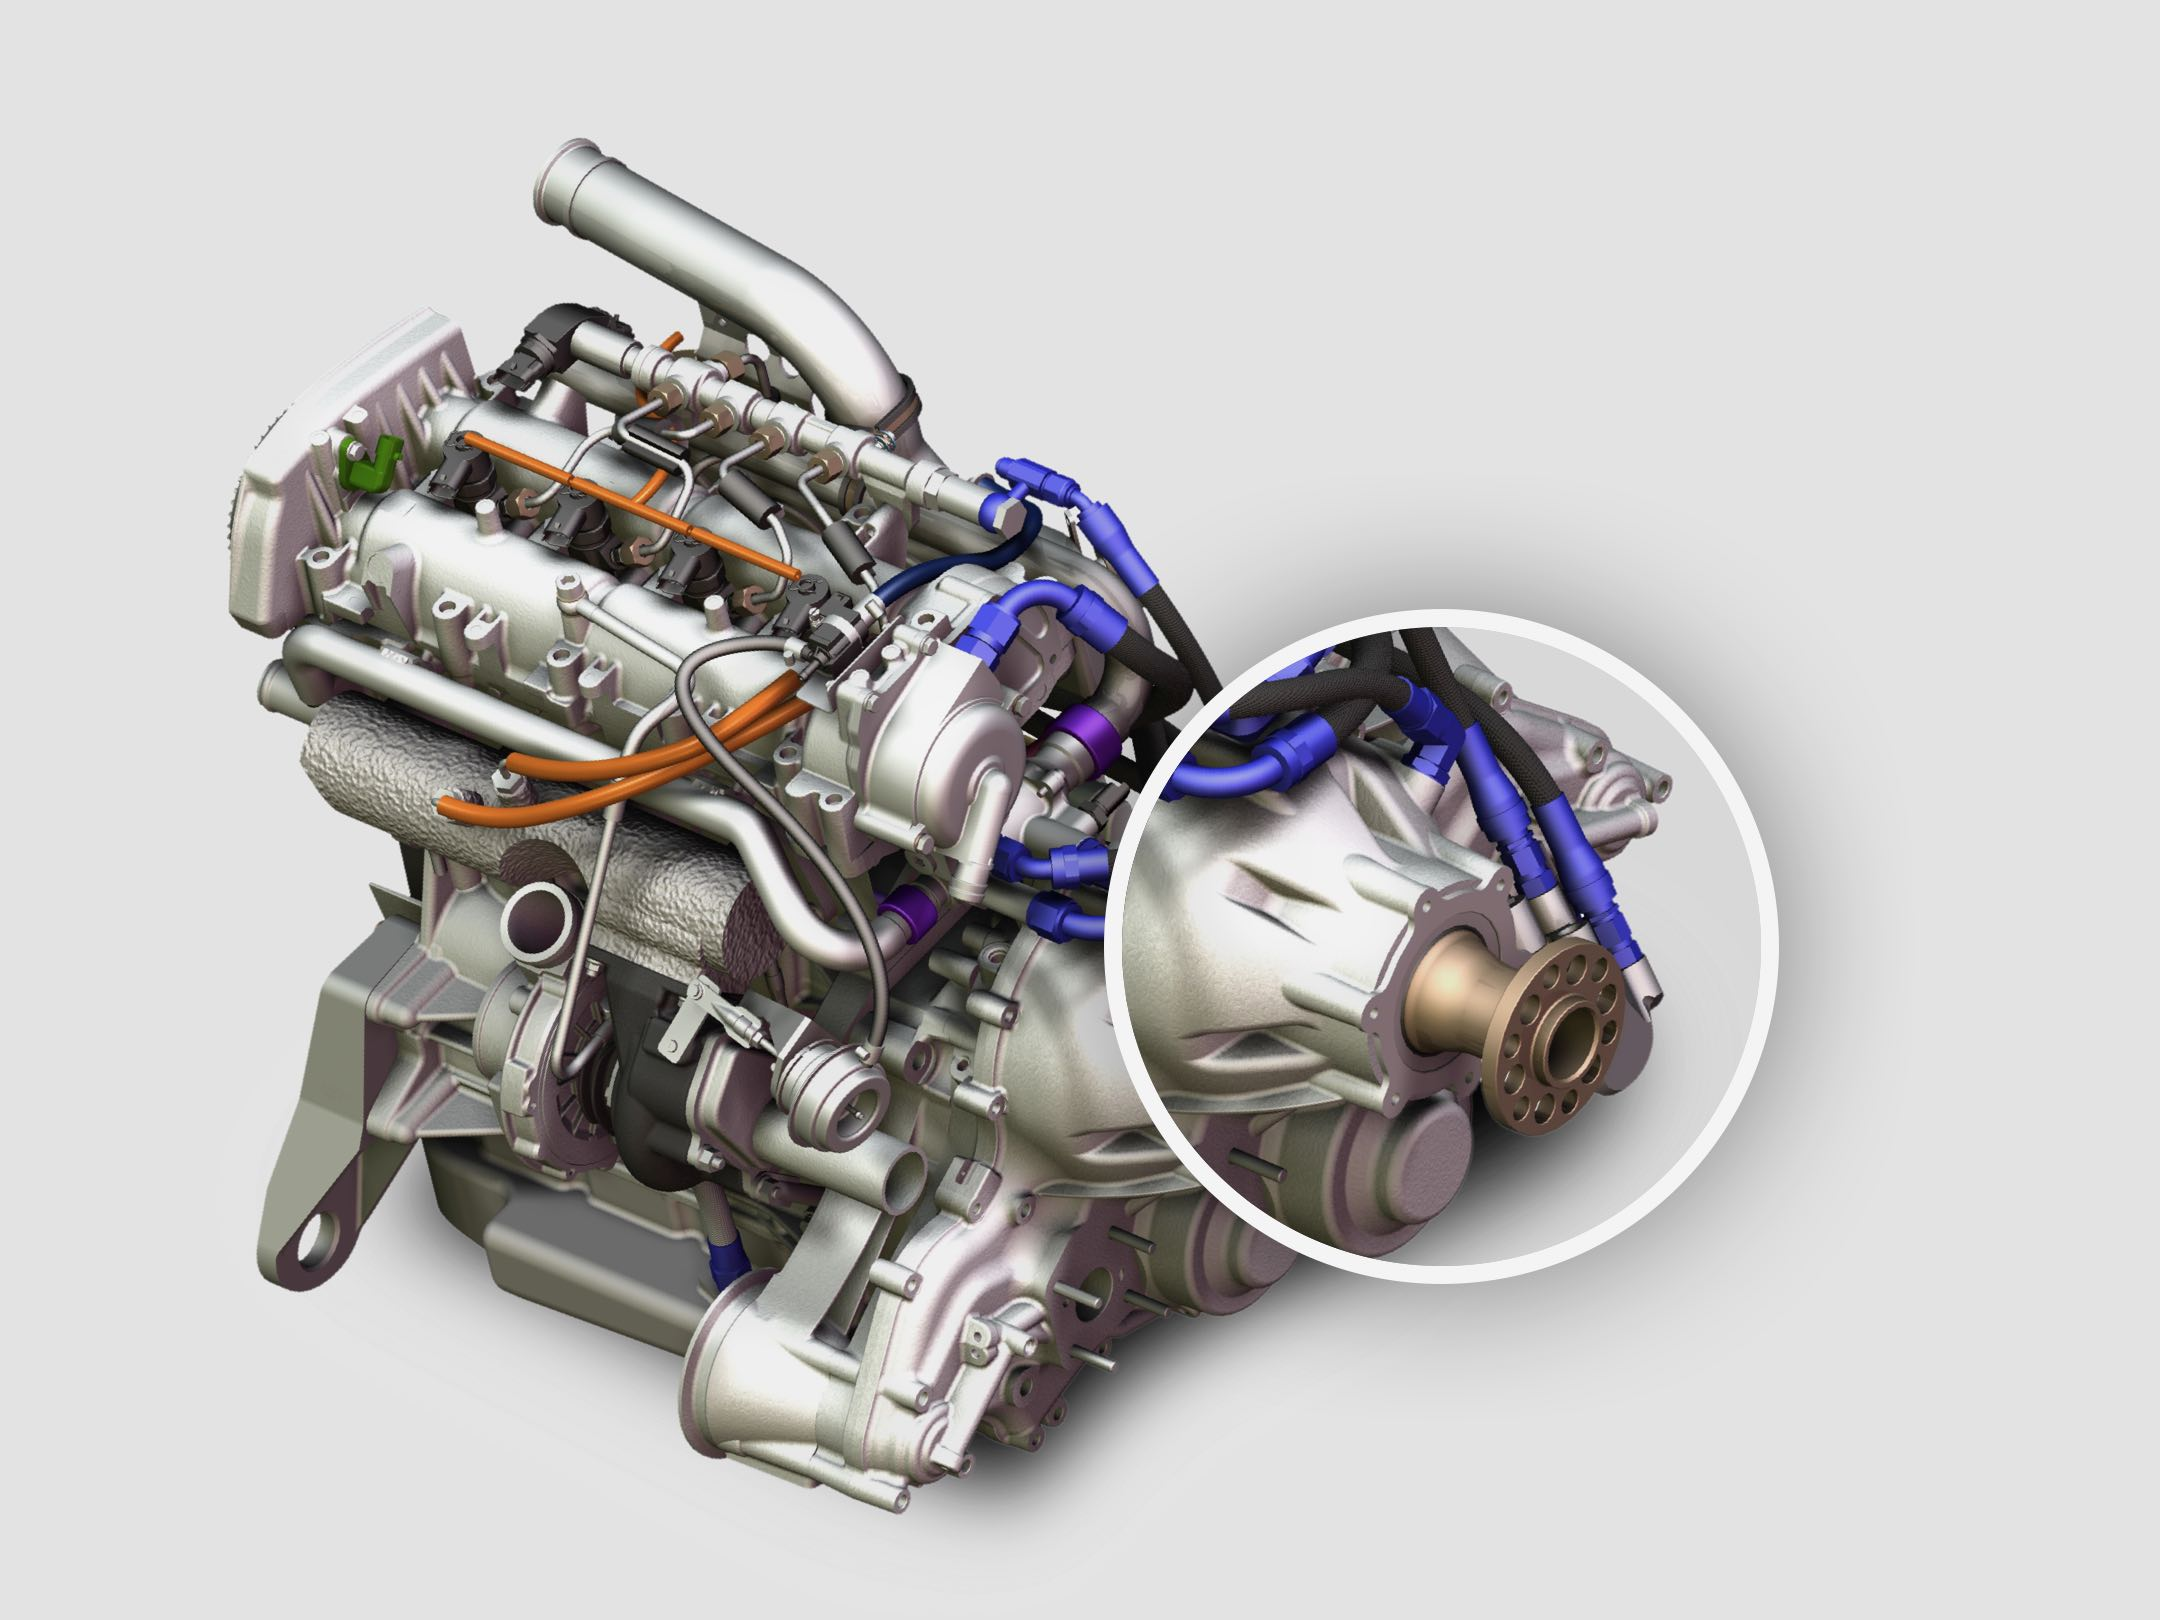 block single cylinder_2 del 120 engine compression ignition diesel cycle engine lycoming Car Wiring Harness at eliteediting.co